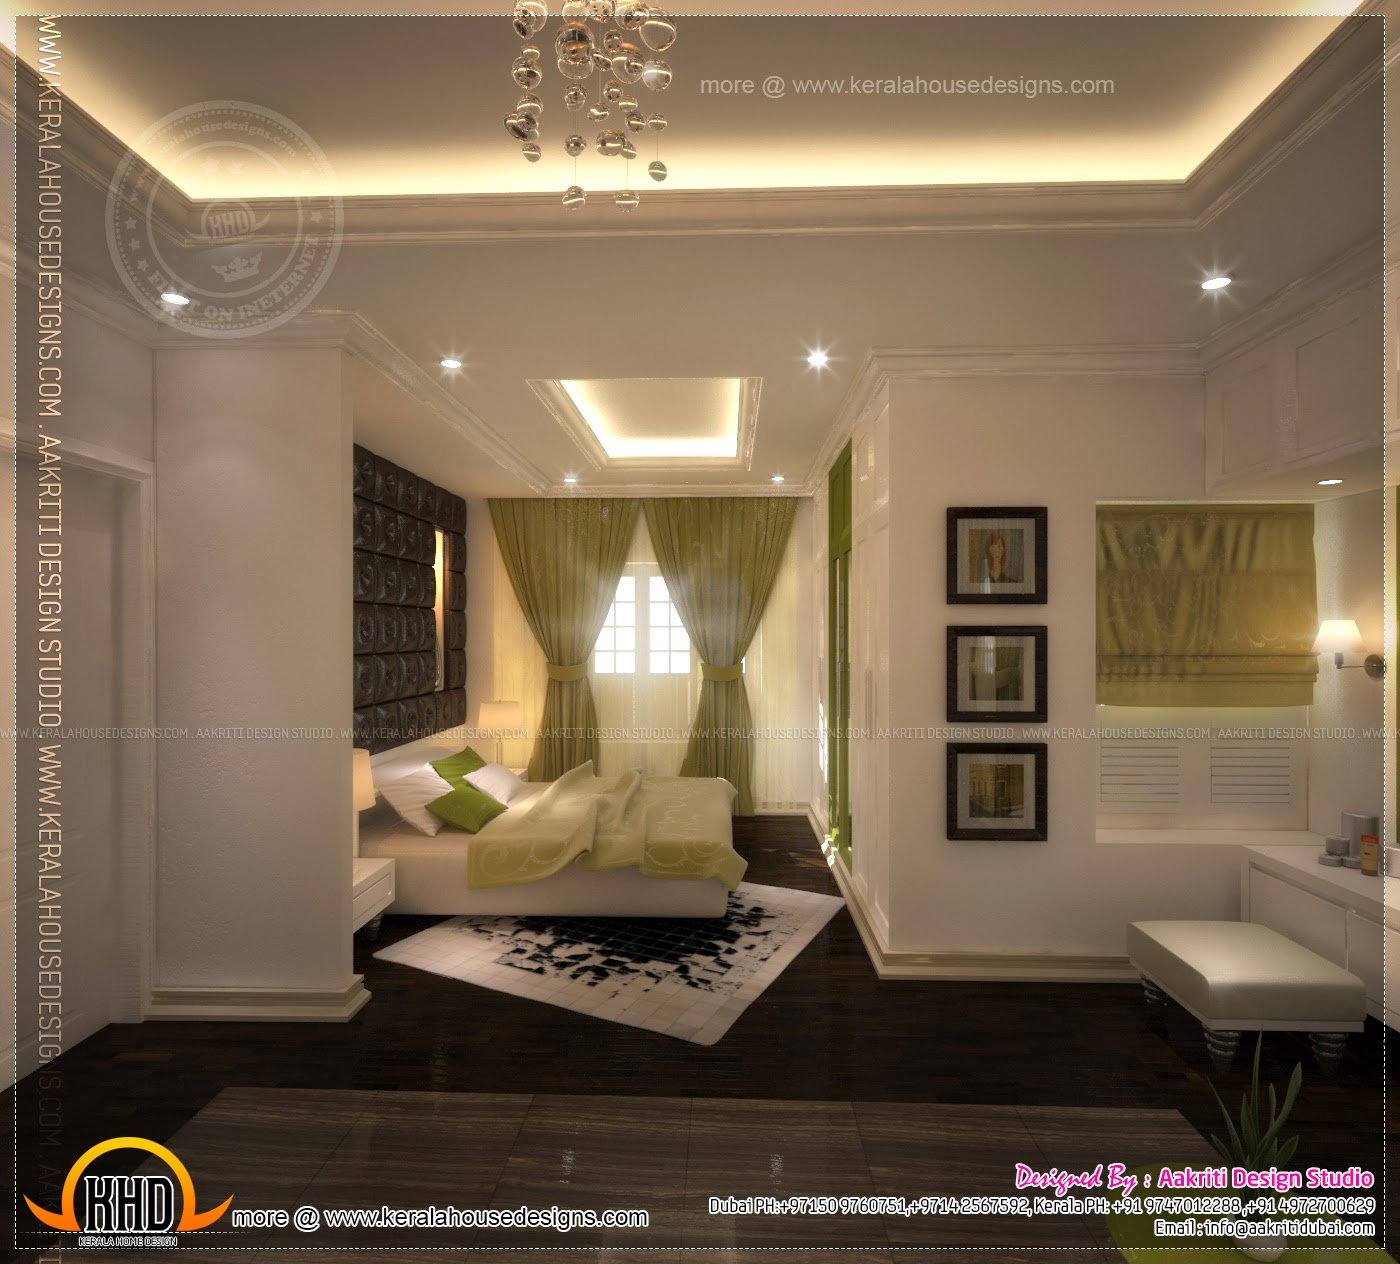 Master Bedroom And Bathroom Interior Design Iskablogs Auto Gadget And Tech News